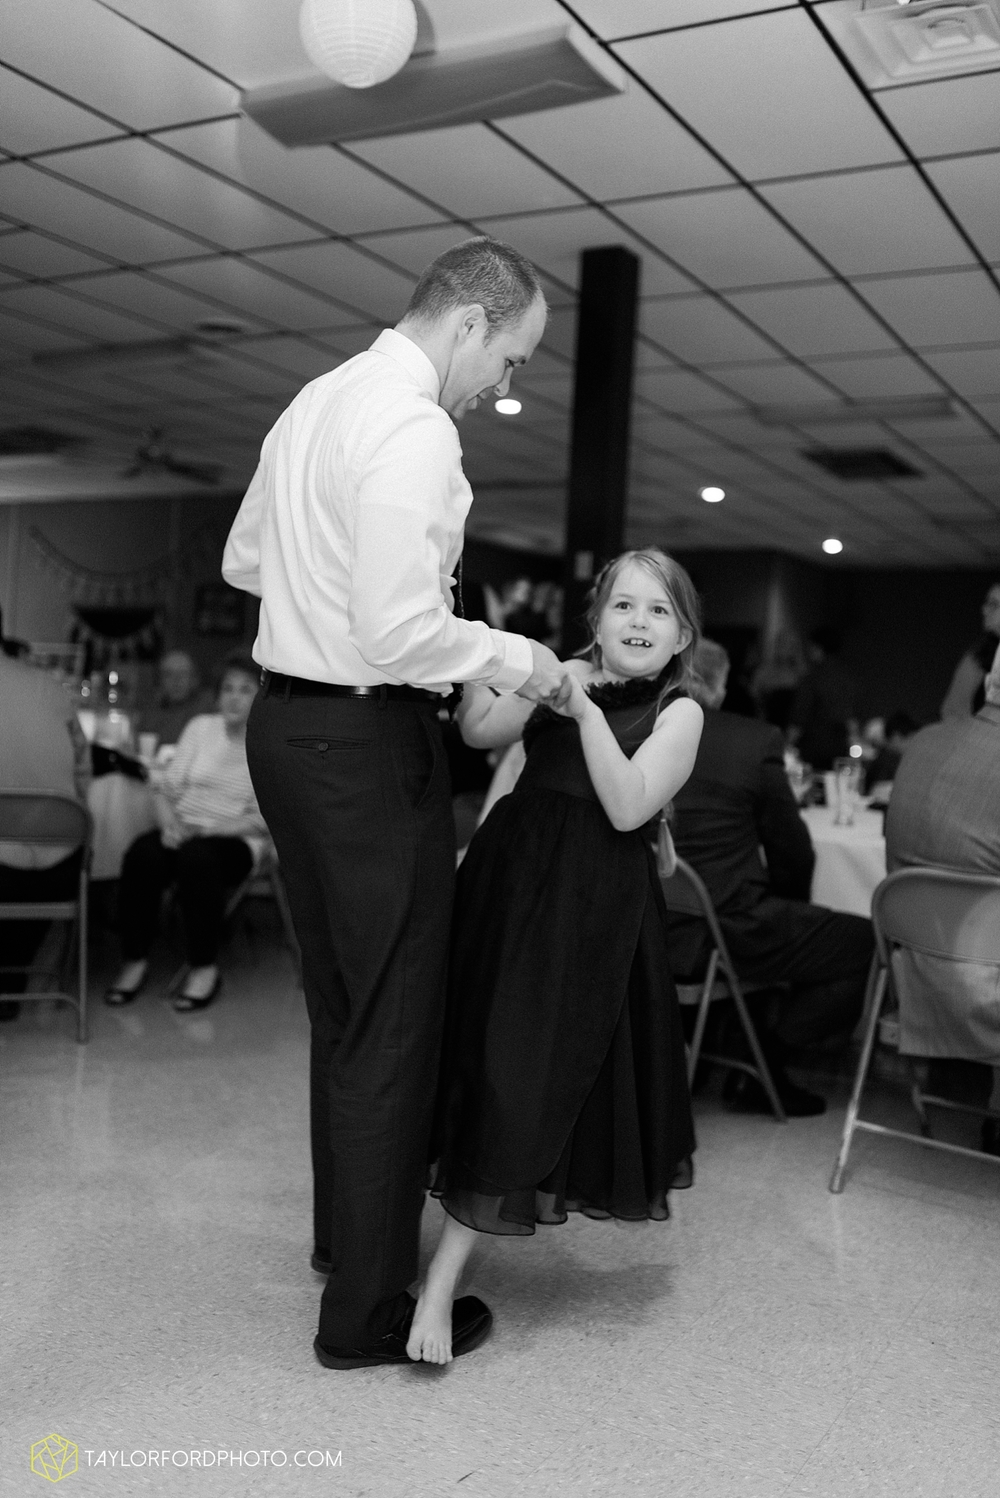 van_wert_ohio_wedding_photographer_taylor_ford_1308.jpg